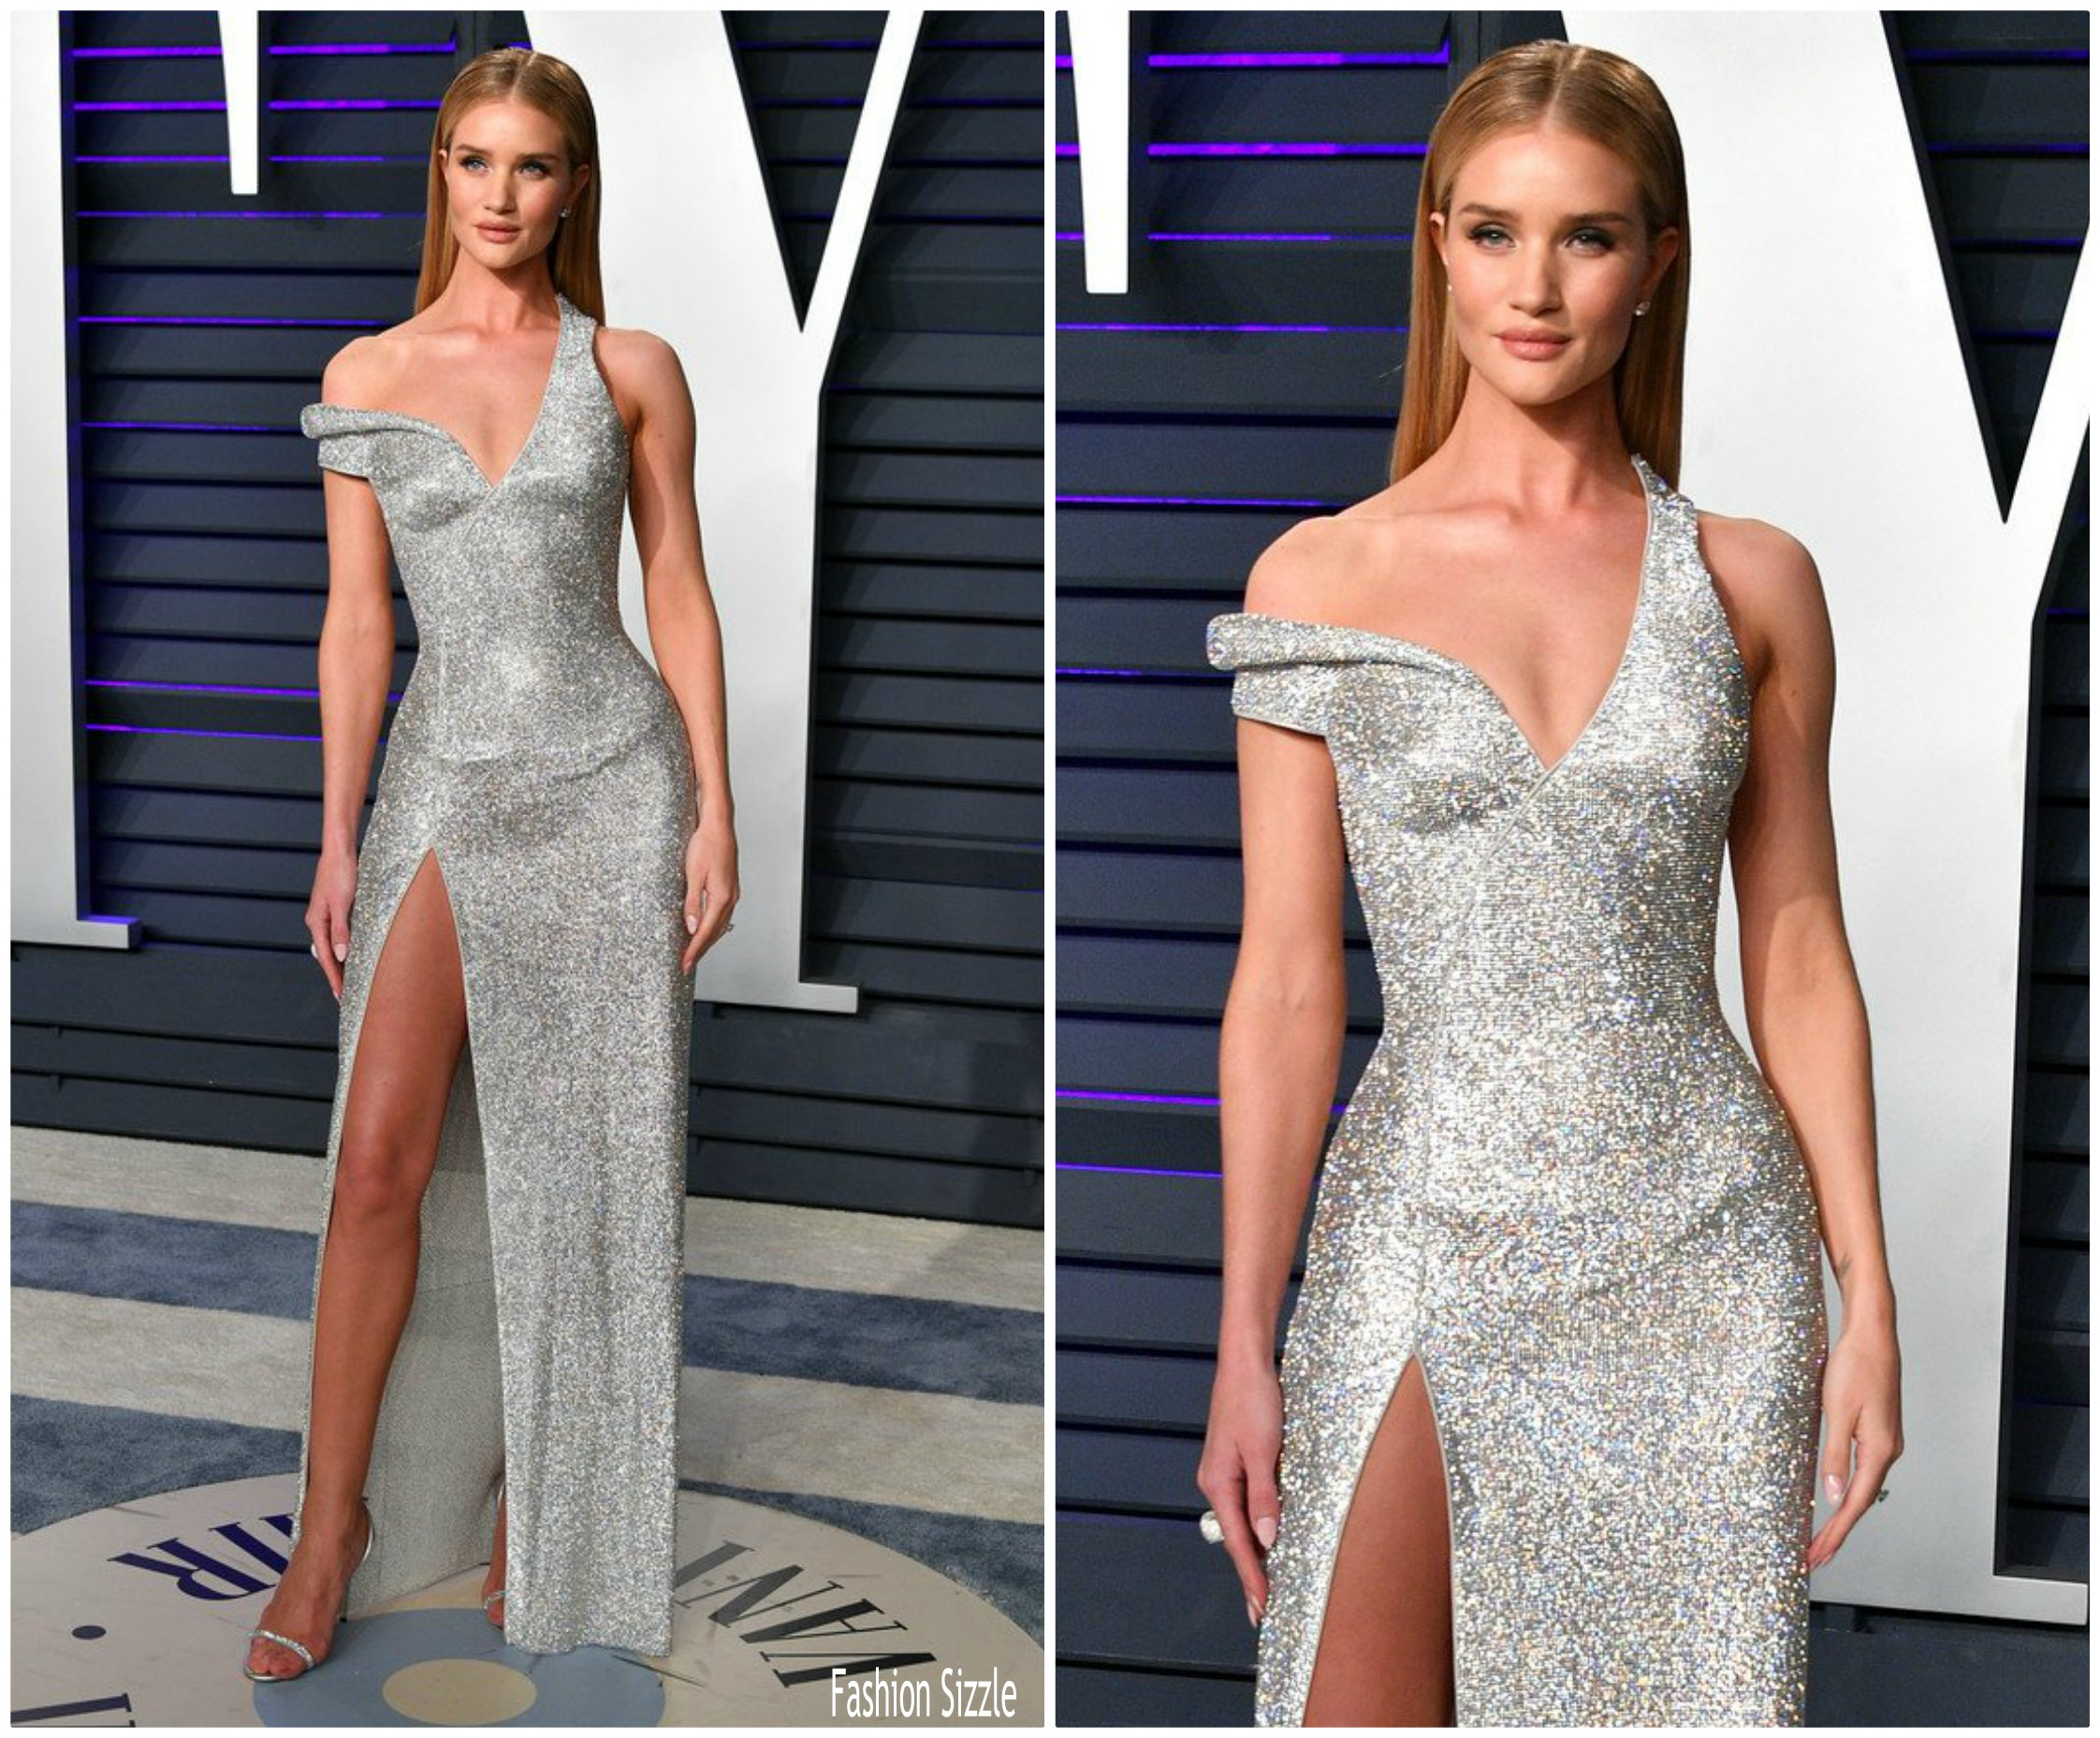 rosie-huntington-whiteley-in-atelier-versace-2019-vanity-fair-oscar-party